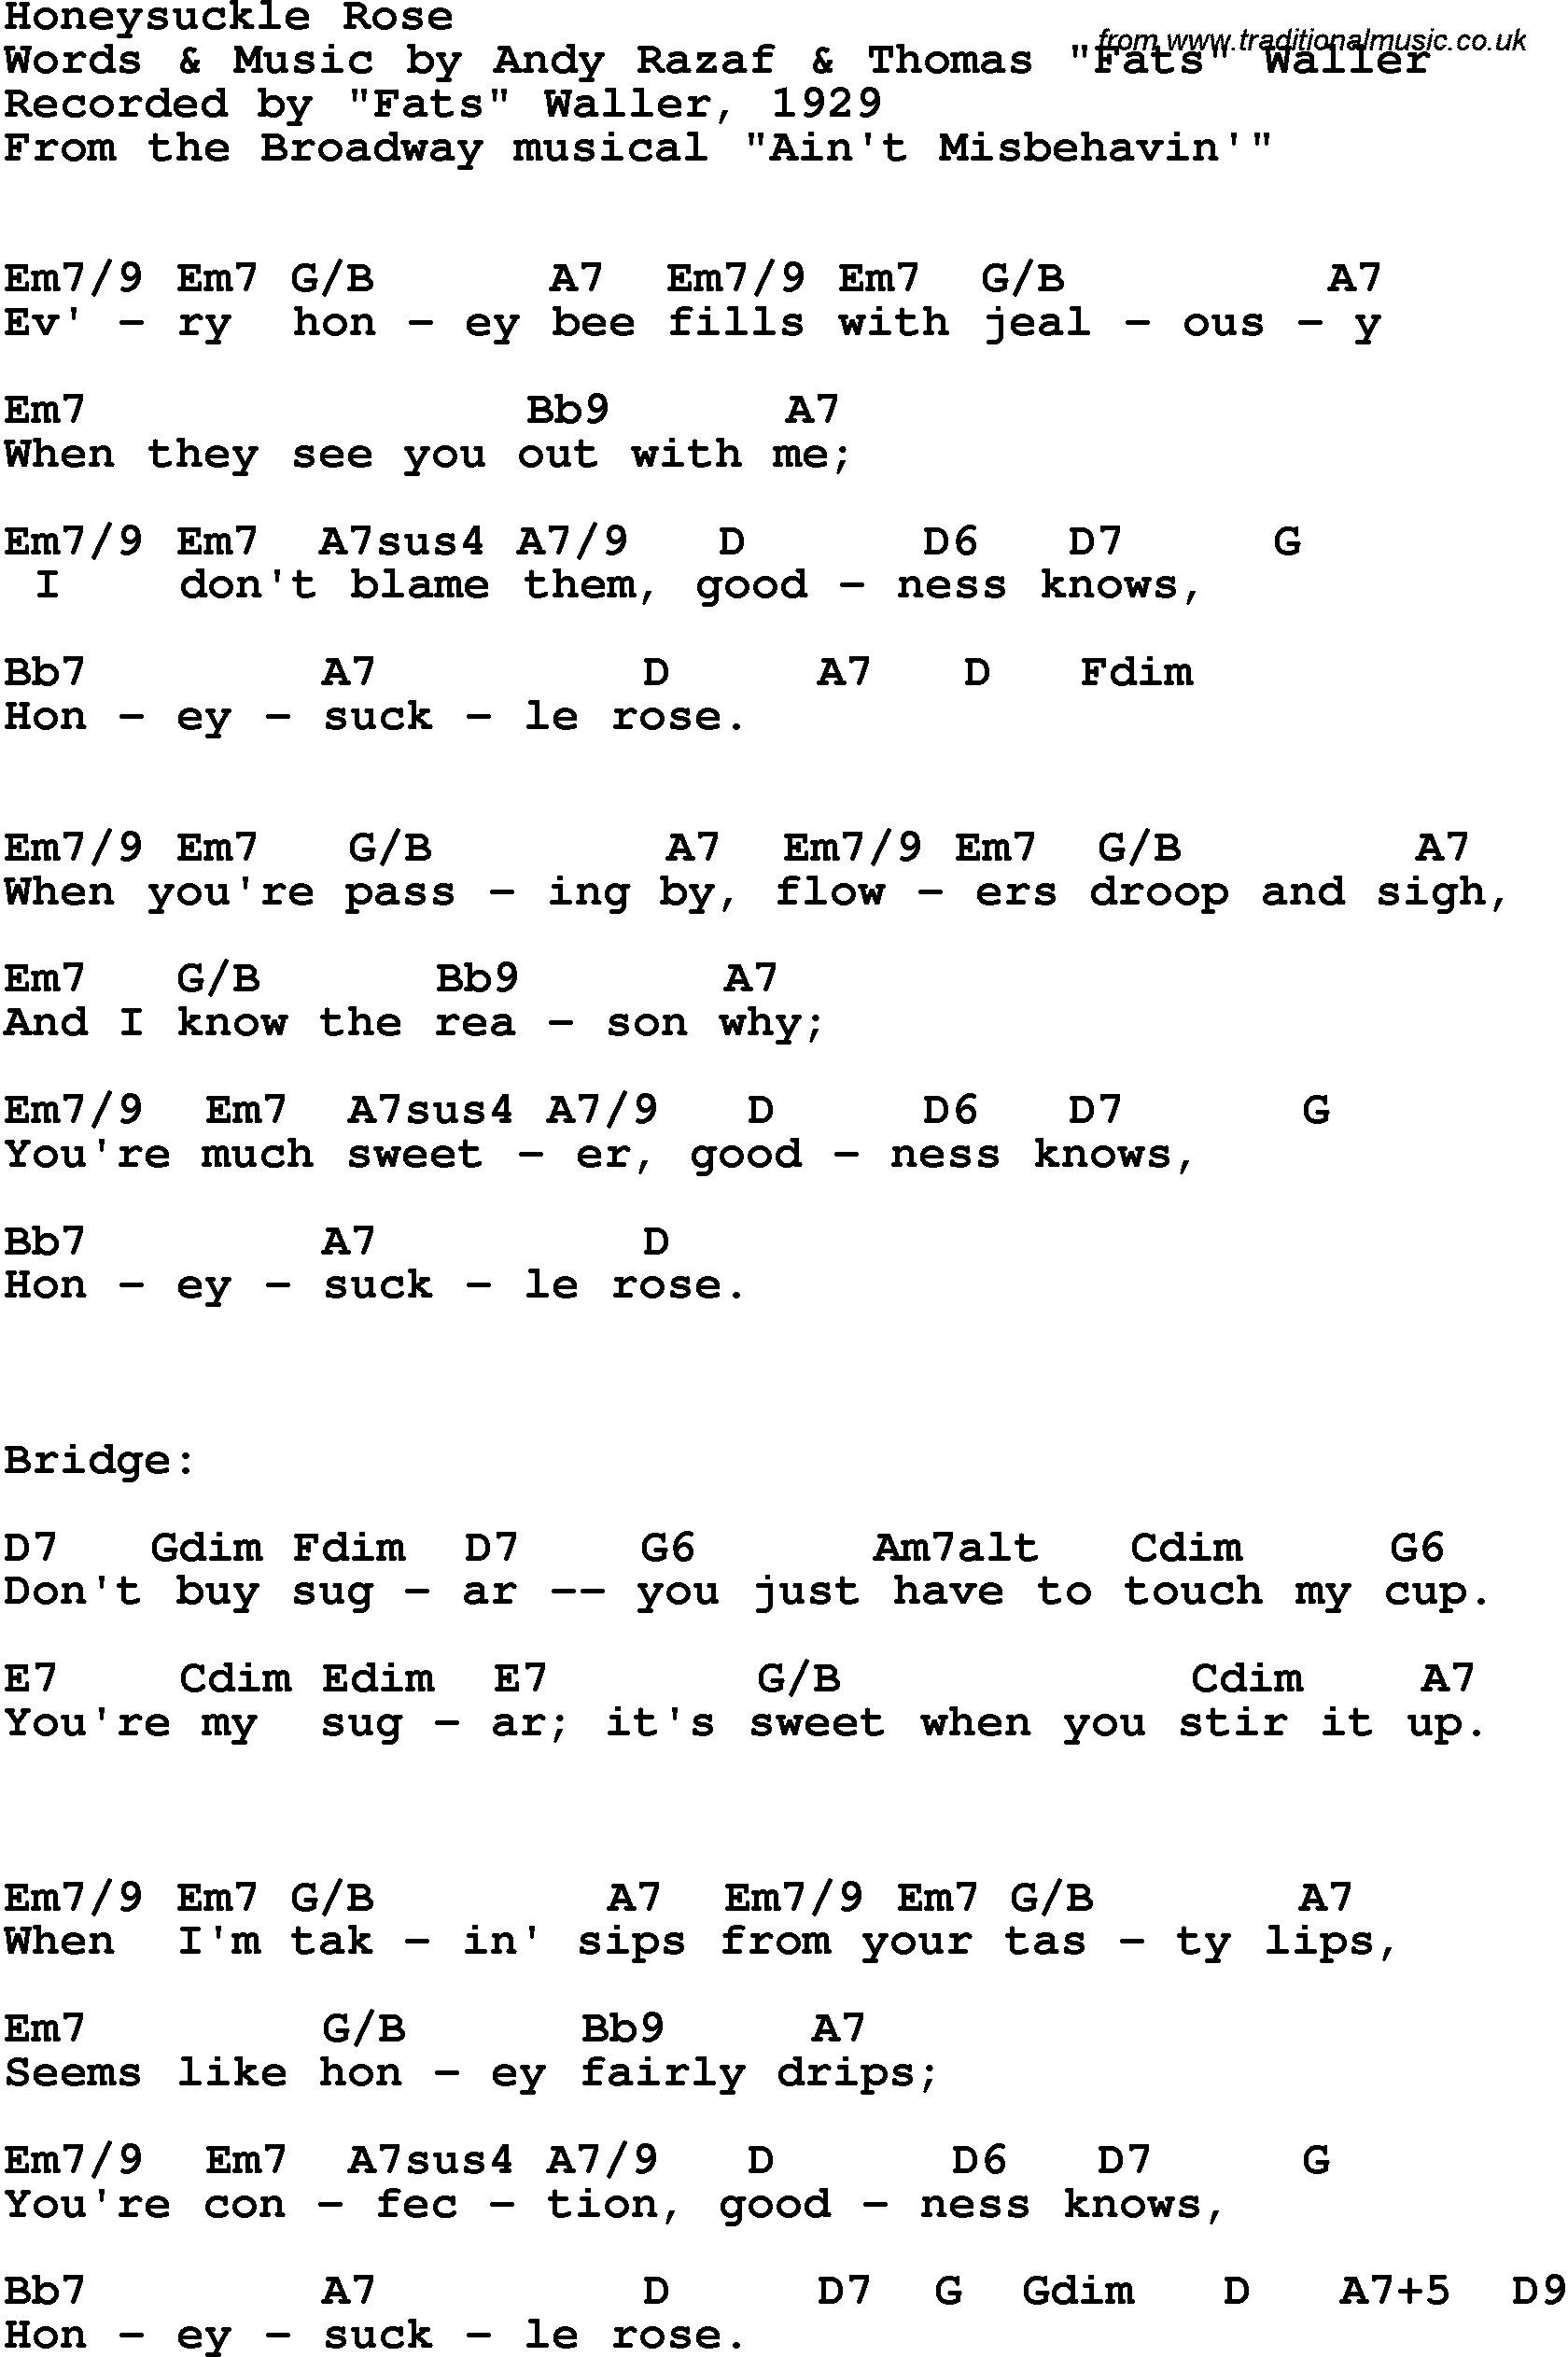 Song Lyrics With Guitar Chords For Honeysuckle Rose Fats Waller 1929